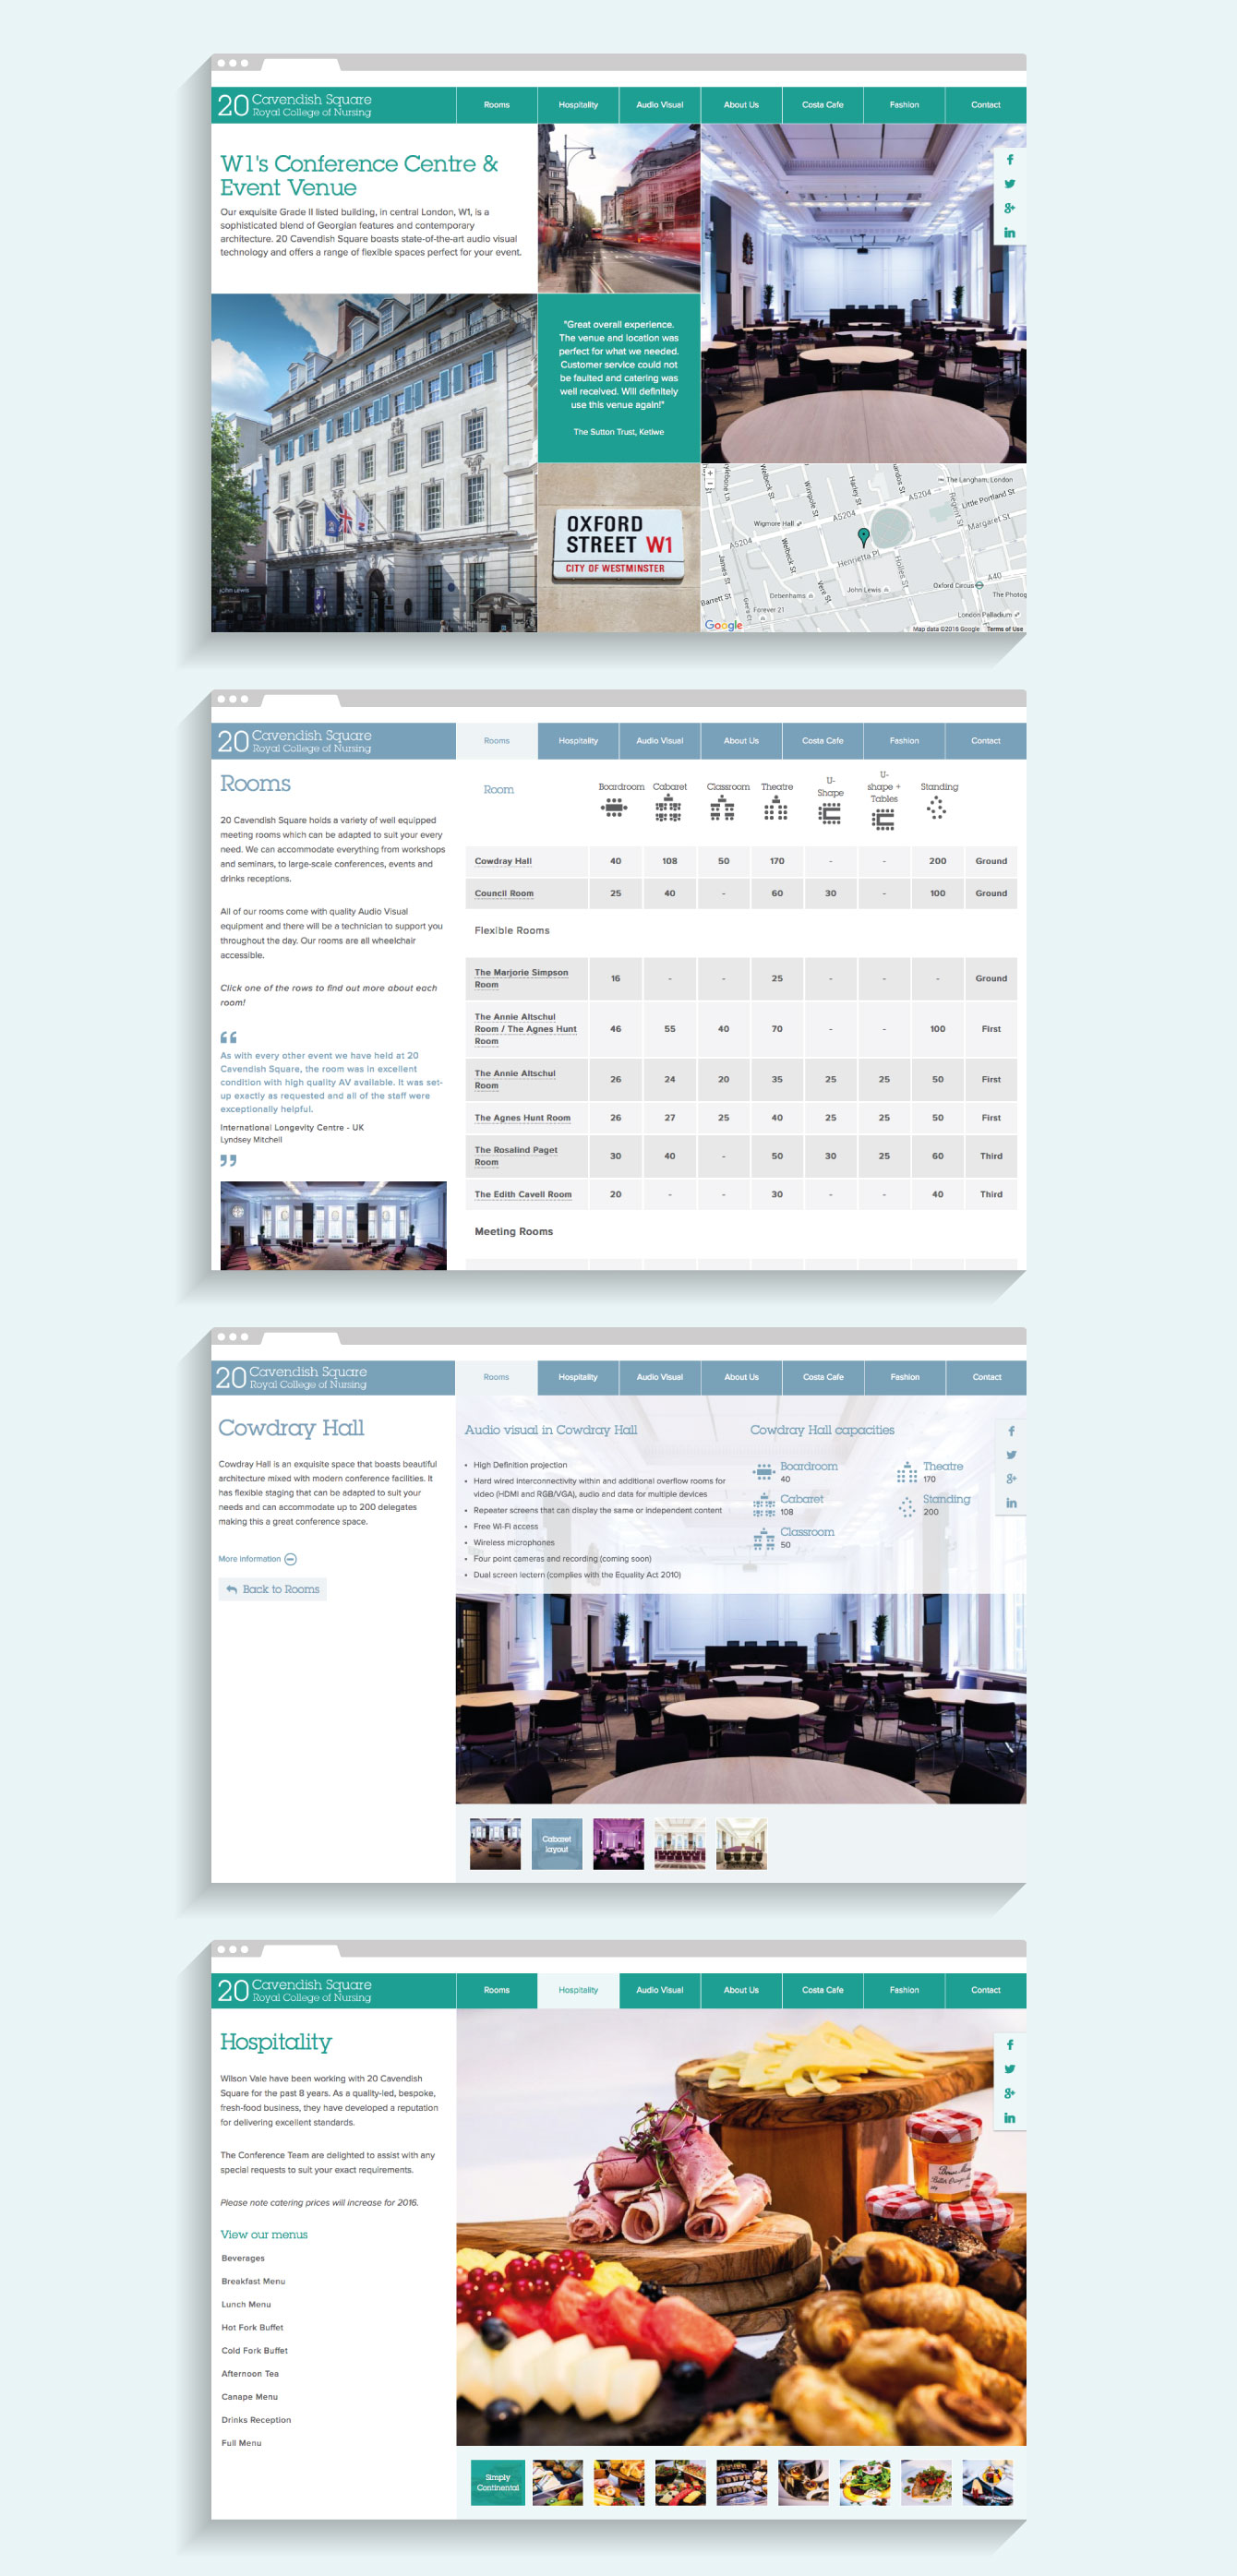 Website pages from the 20 Cavendish Square website - desktop